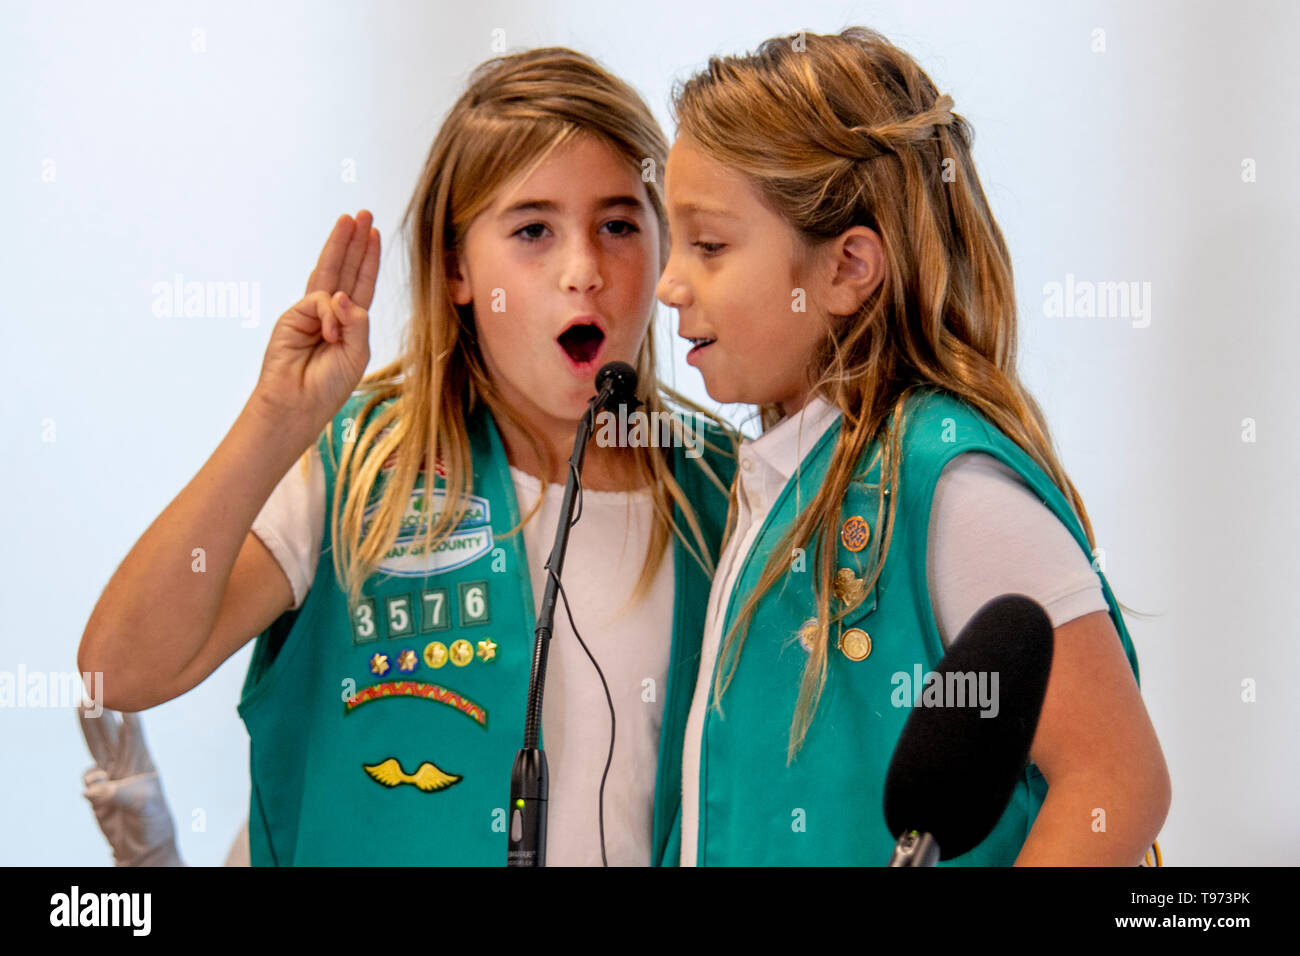 Two uniformed Girl Scouts recite the Girl Scout Oath at the dedication of a patriotic government ceremony in Newport Beach, CA. - Stock Image